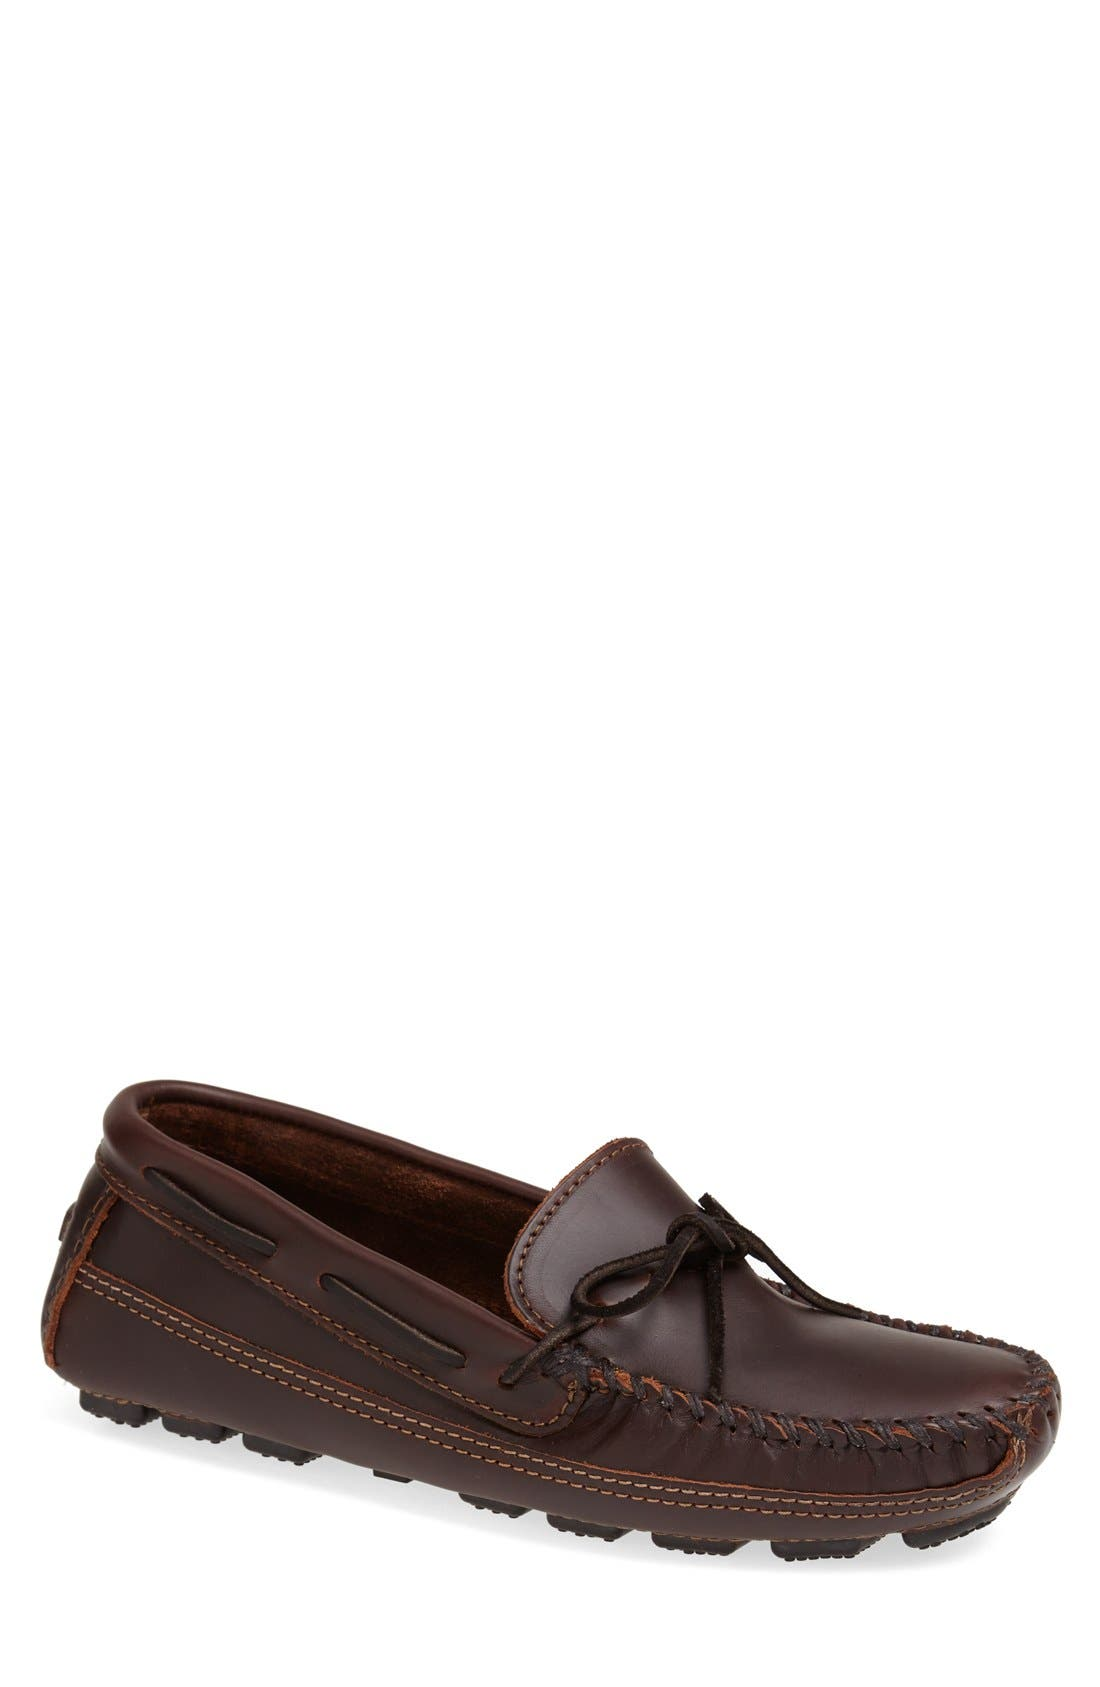 Leather Driving Shoe,                         Main,                         color, BROWN